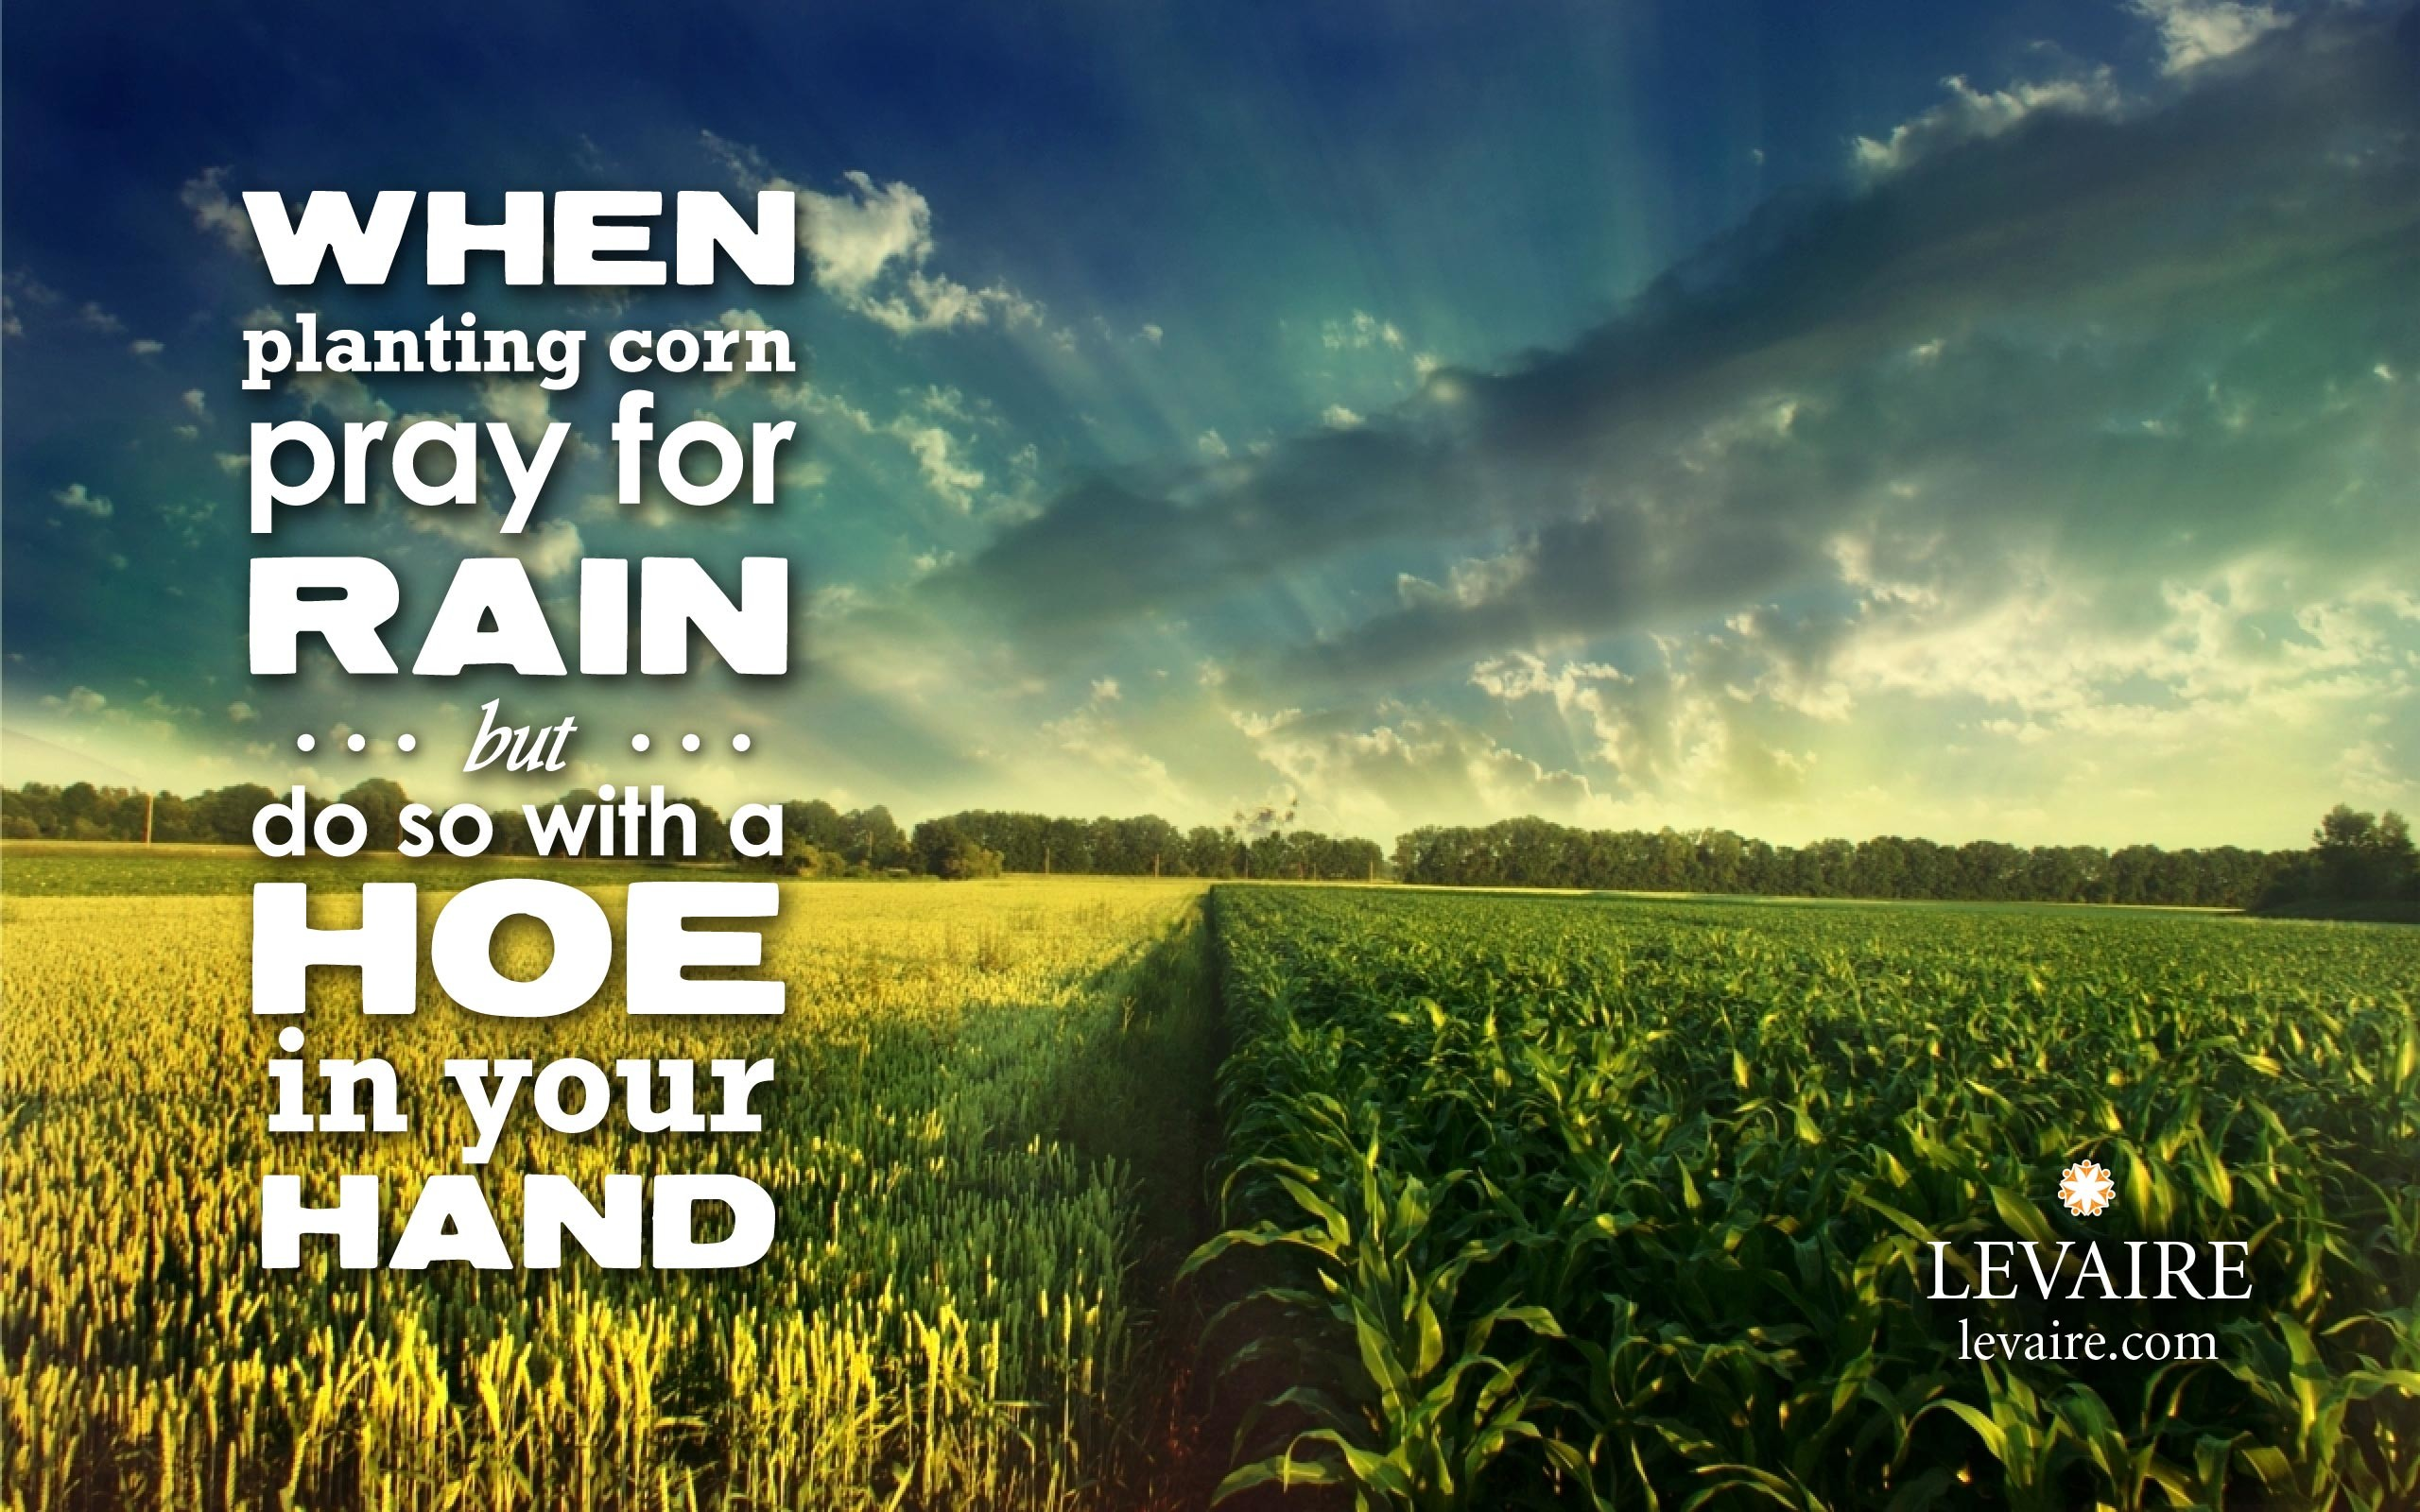 When planting corn, pray for rain but do so with a hoe in your hand